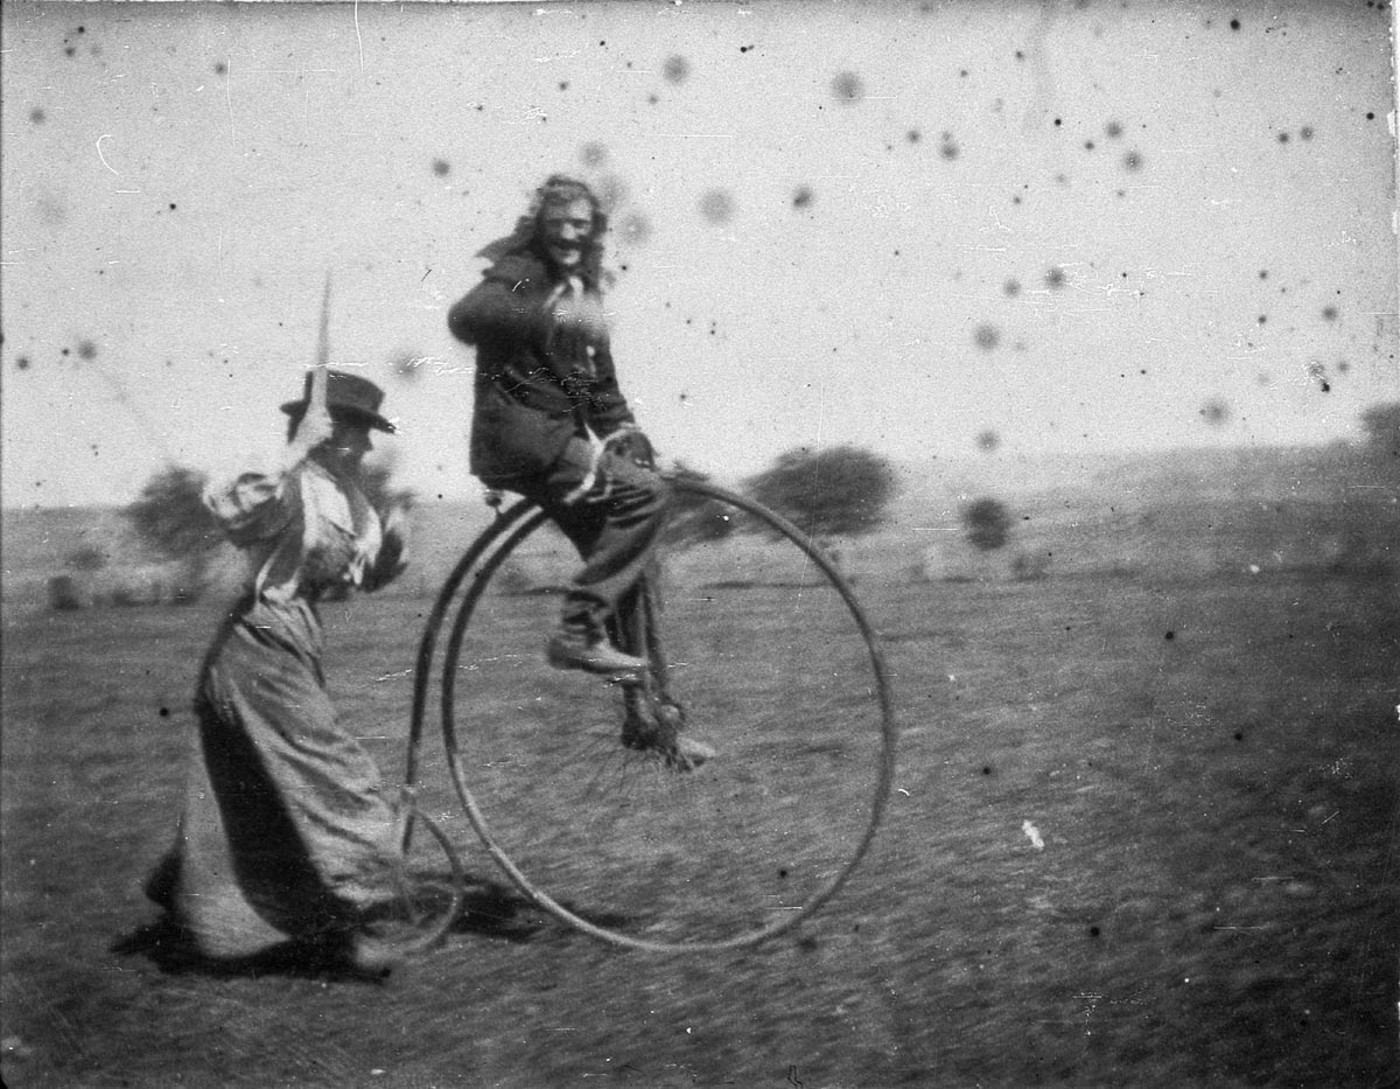 what was unusual about the penny farthing?